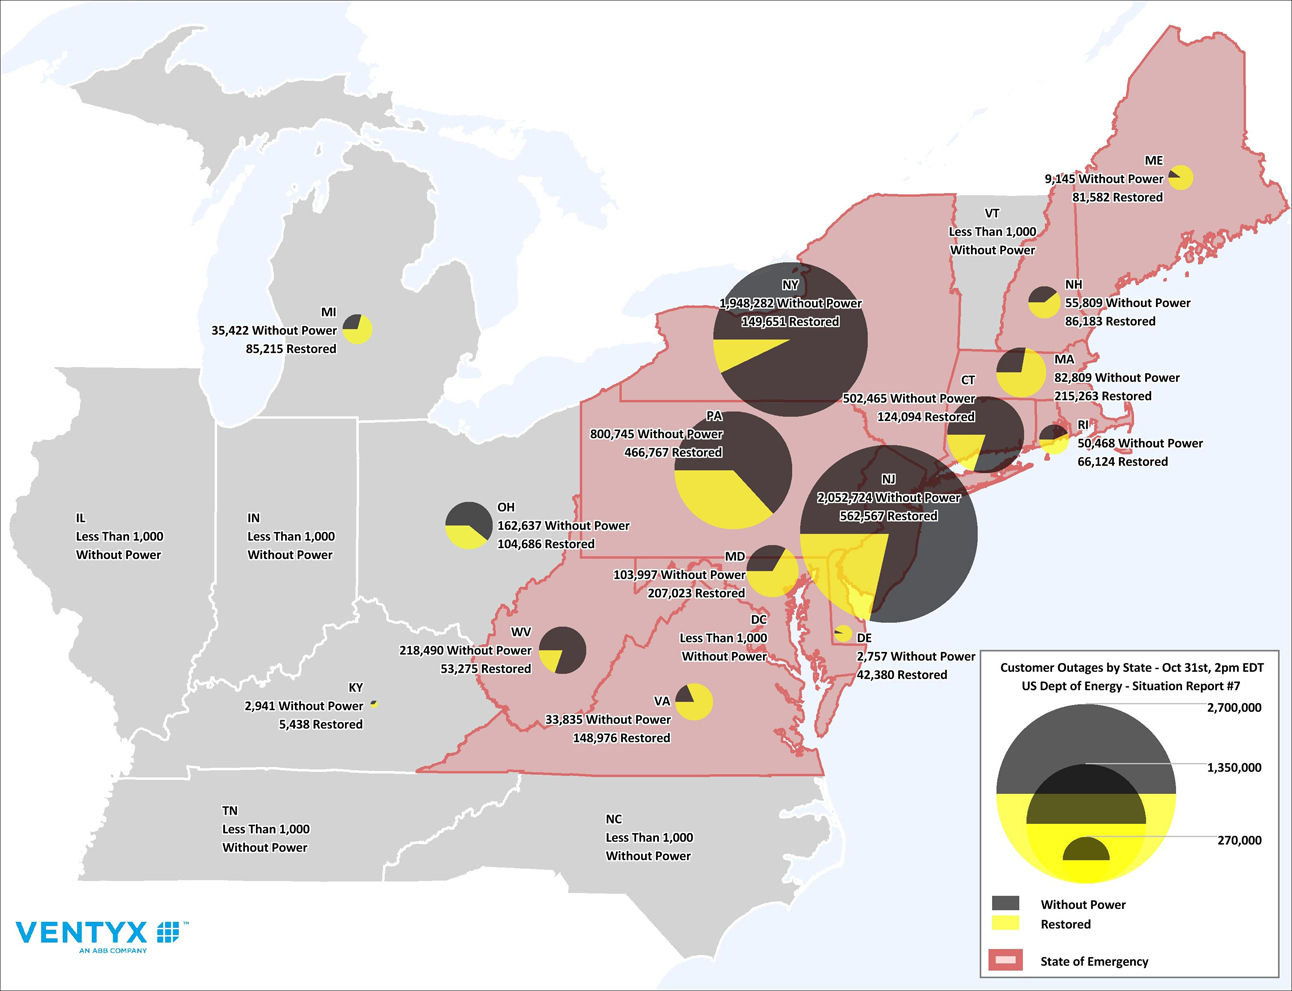 Cl P Power Outage Map.Hurricane Sandy Utility Outages May Be Worsened By Underinvestment